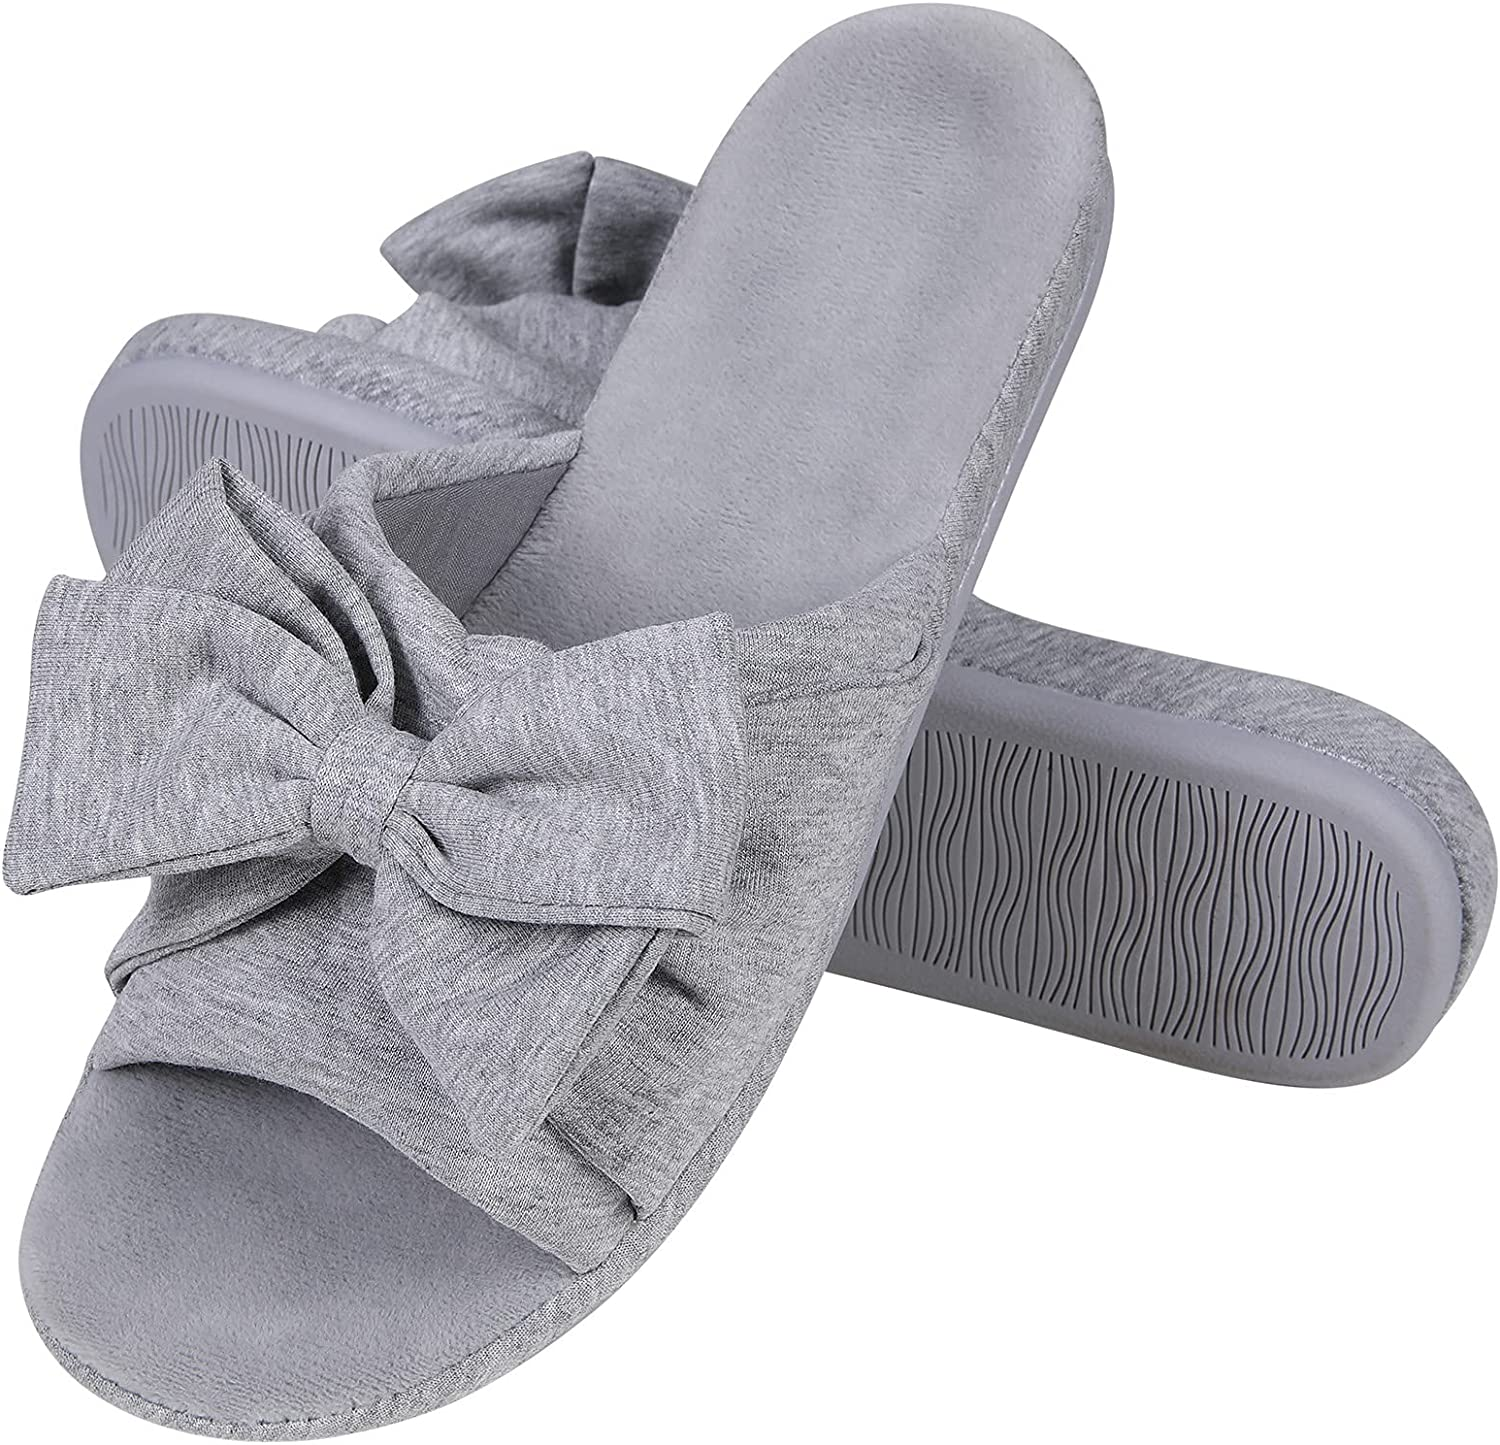 Beslip Bow Summer Slippers for Wome Open Toe Slip-on House Slippers with Arch Support